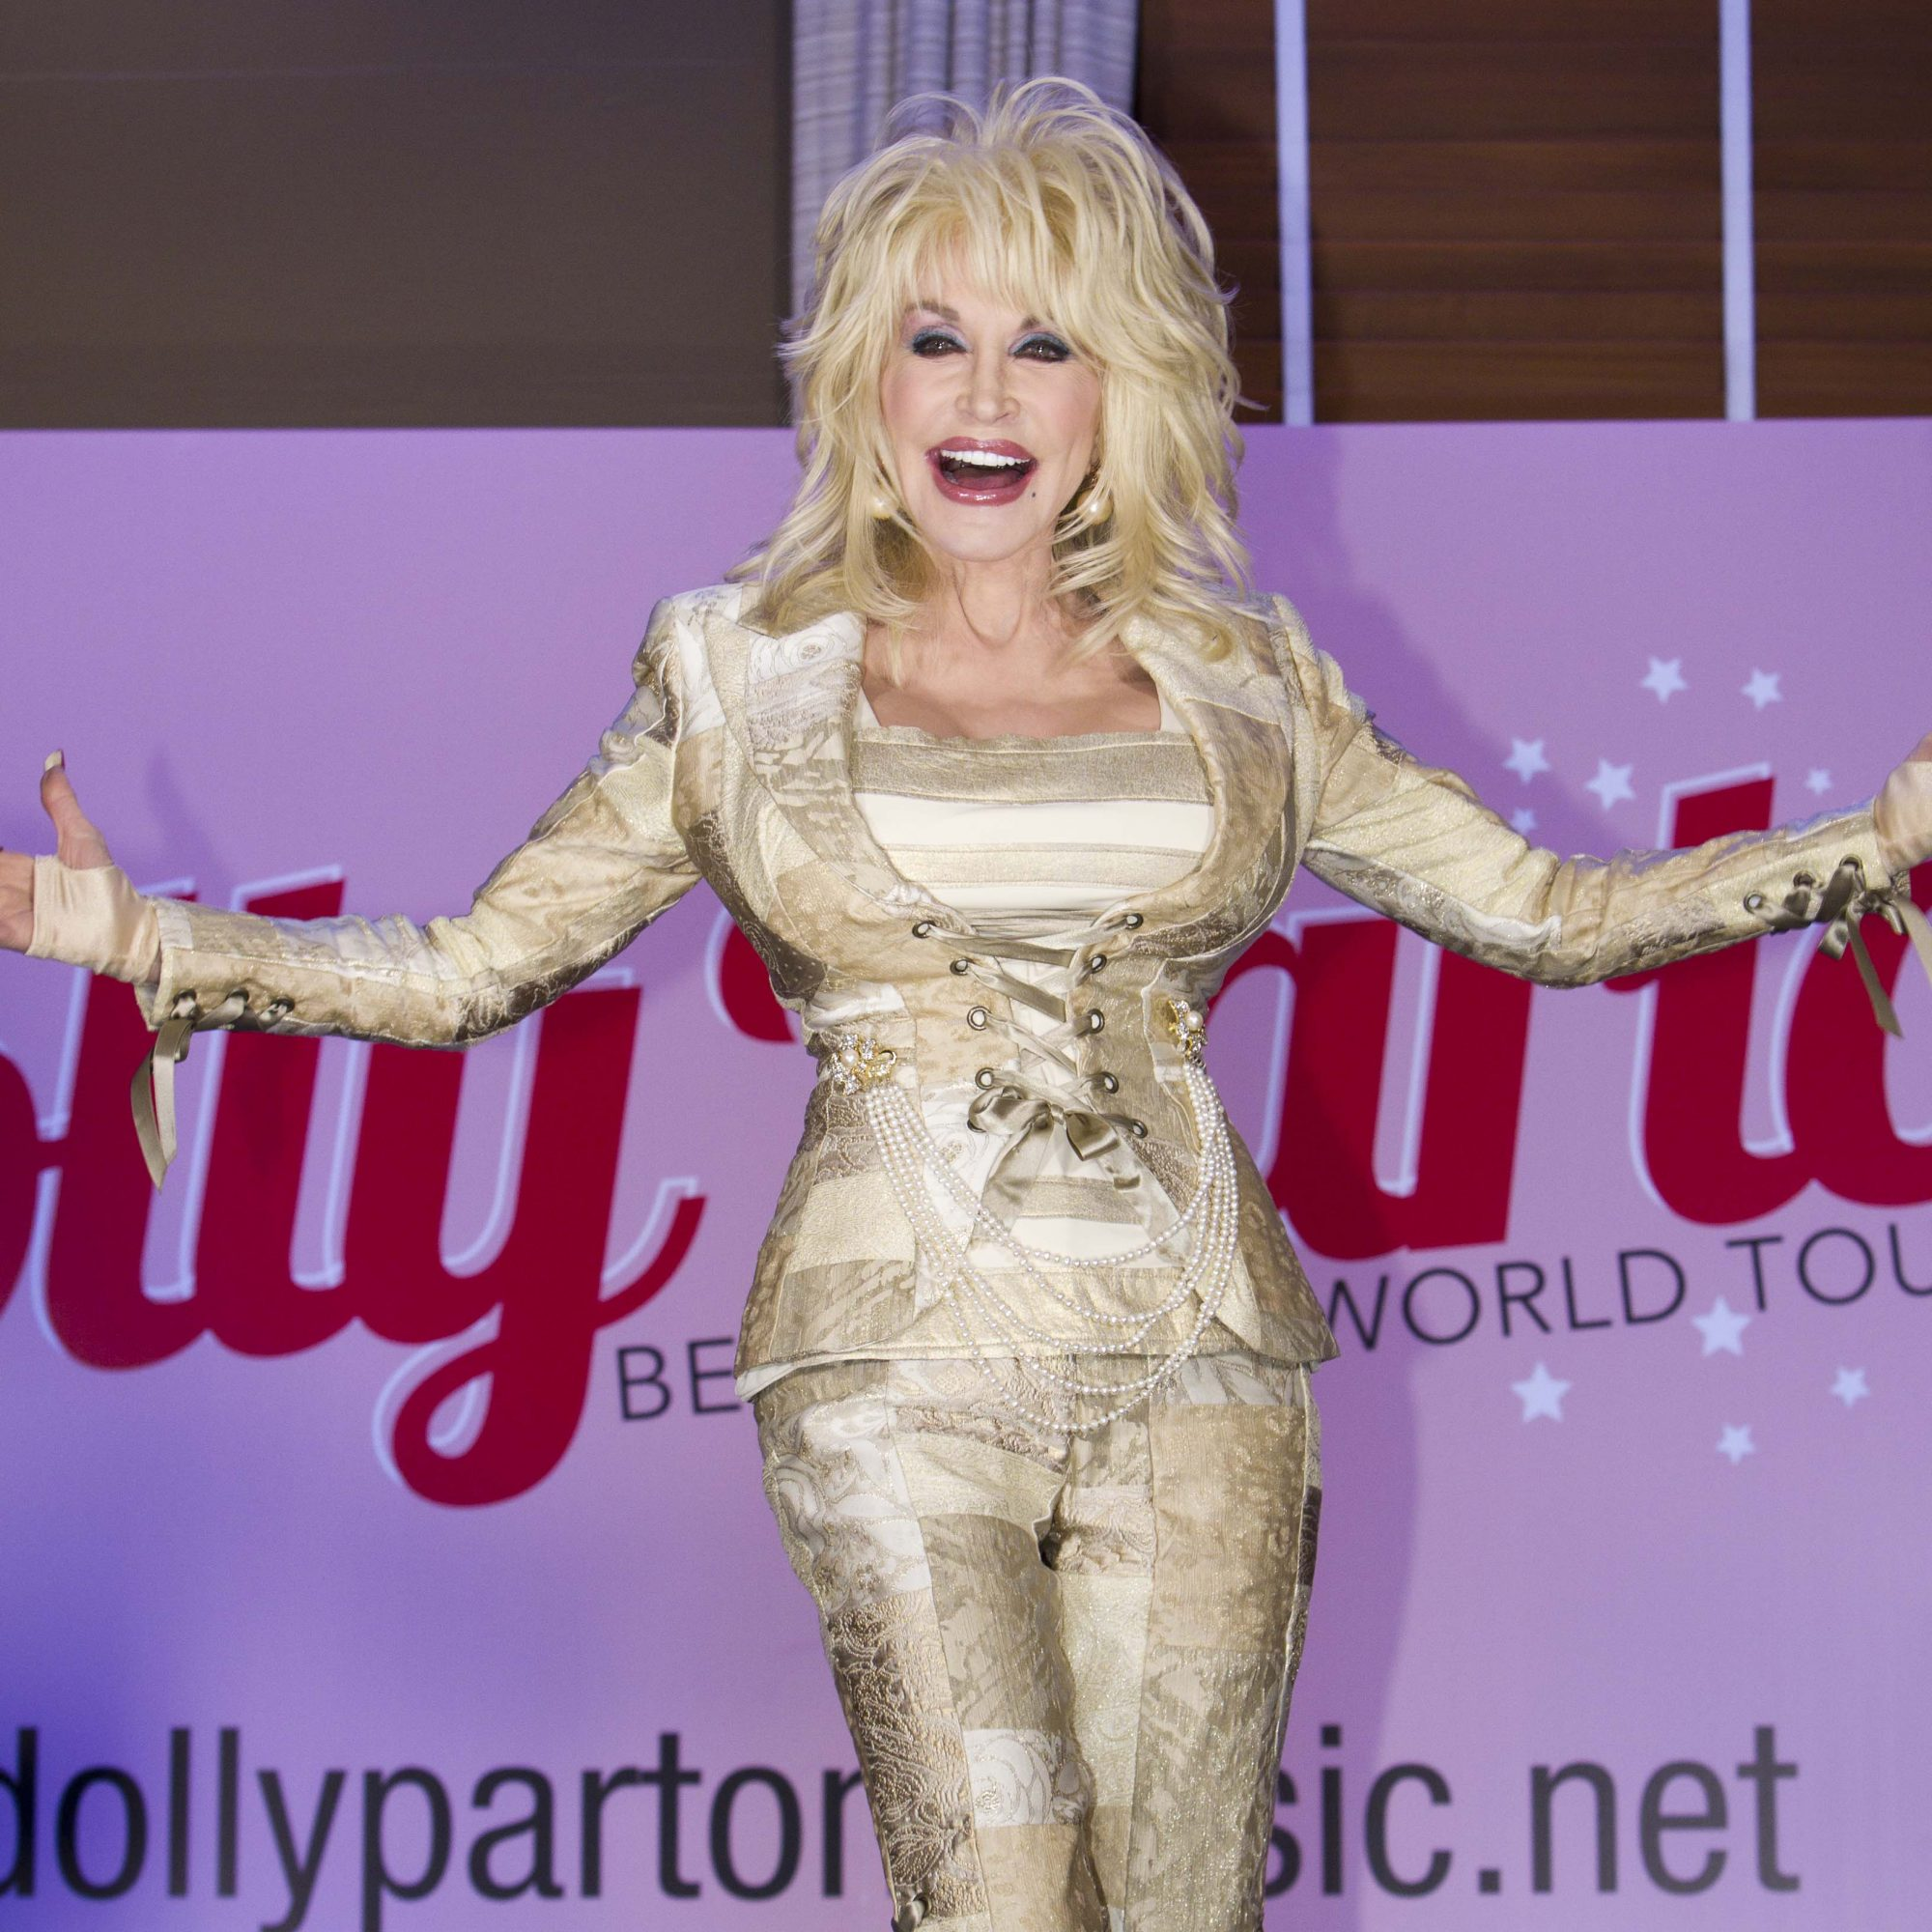 Dolly Parton Childhood Home Renovation Southern Living